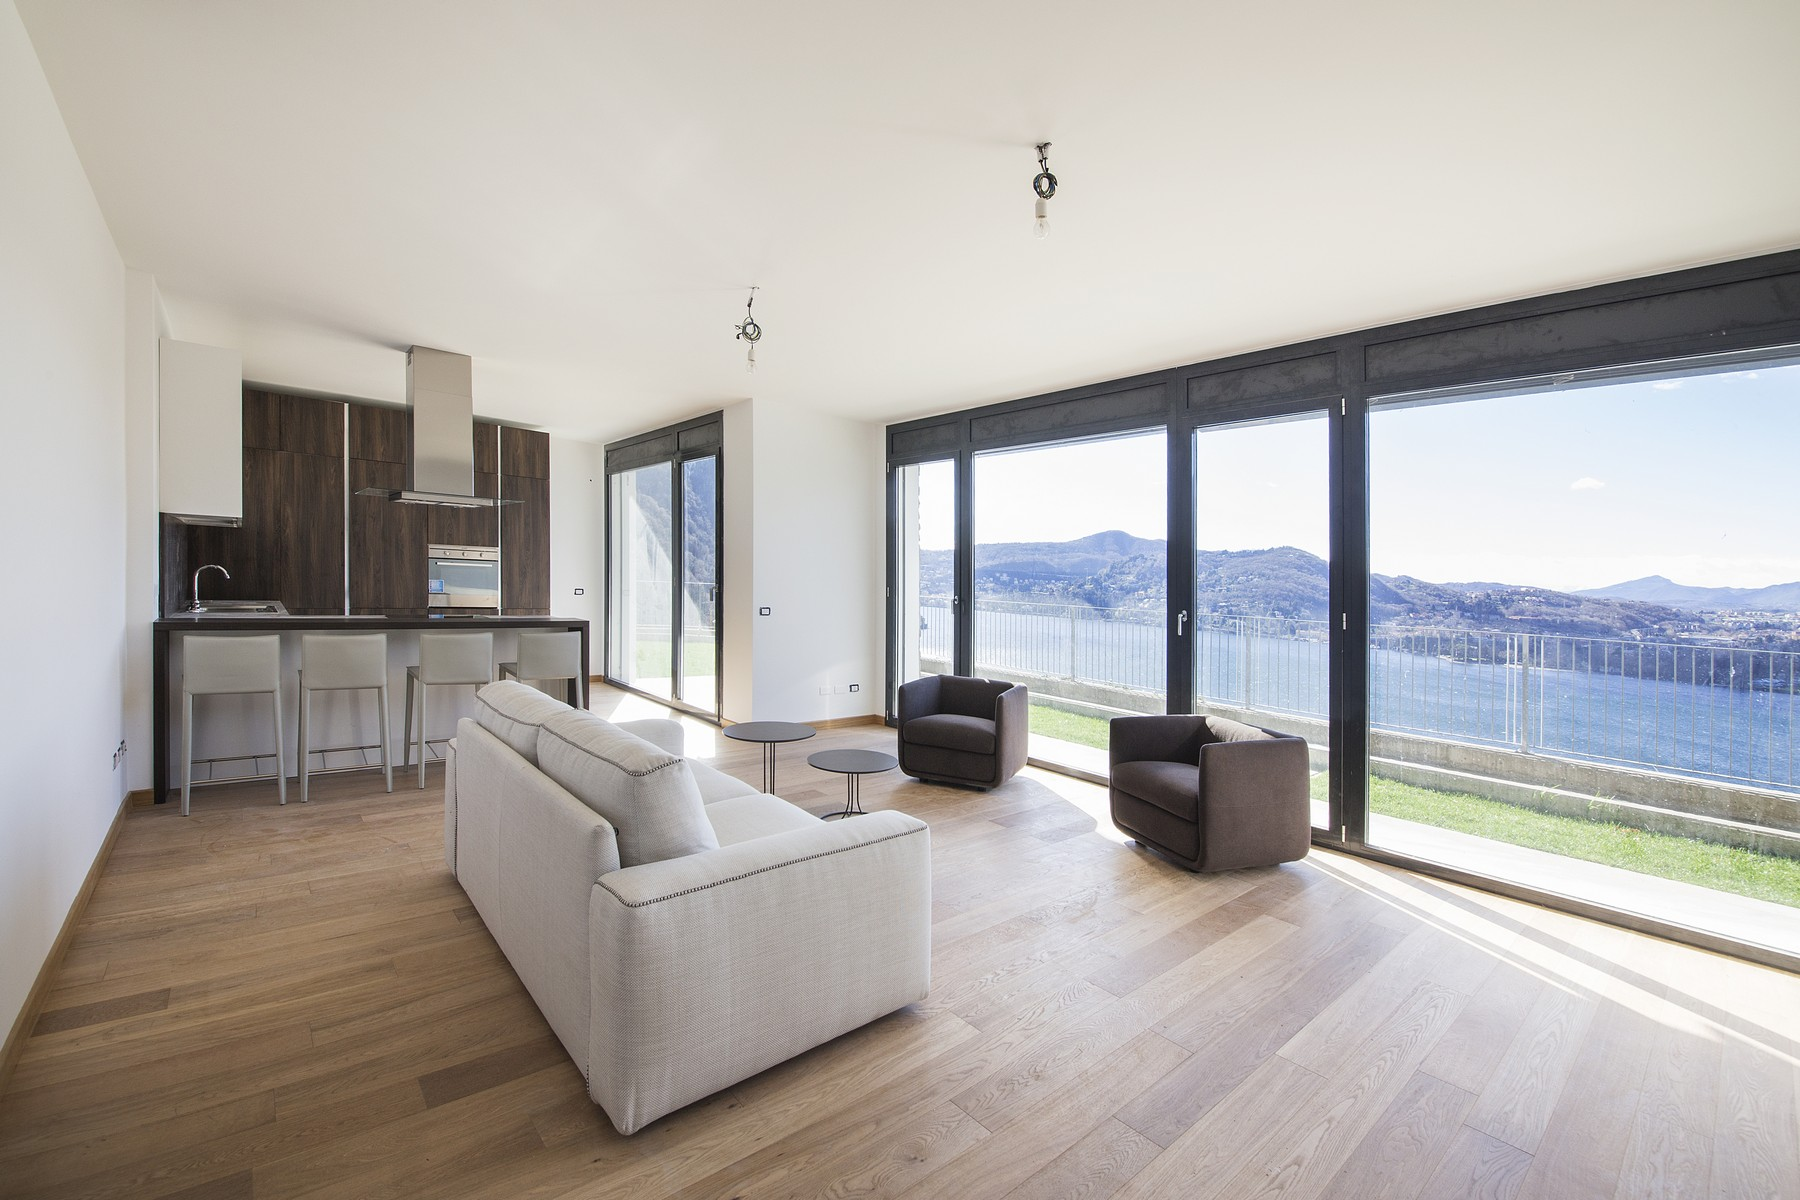 Apartment for Sale at Modern apartment with private garden and amazing lake views Blevio, Como, Italy